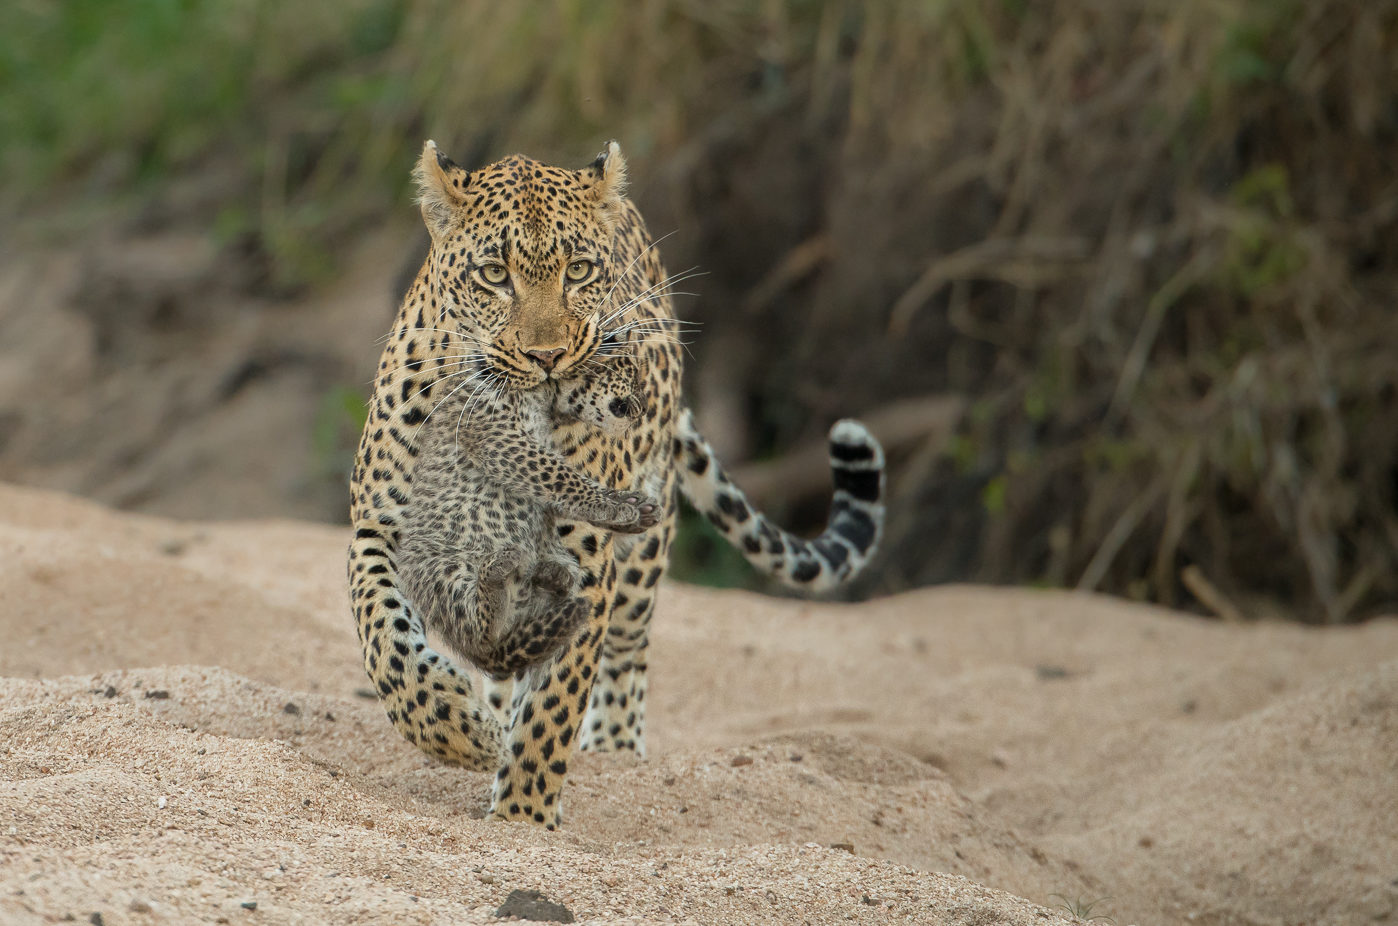 A leopard at Londolozi carries her cub across a sandy river bed by David Dampier